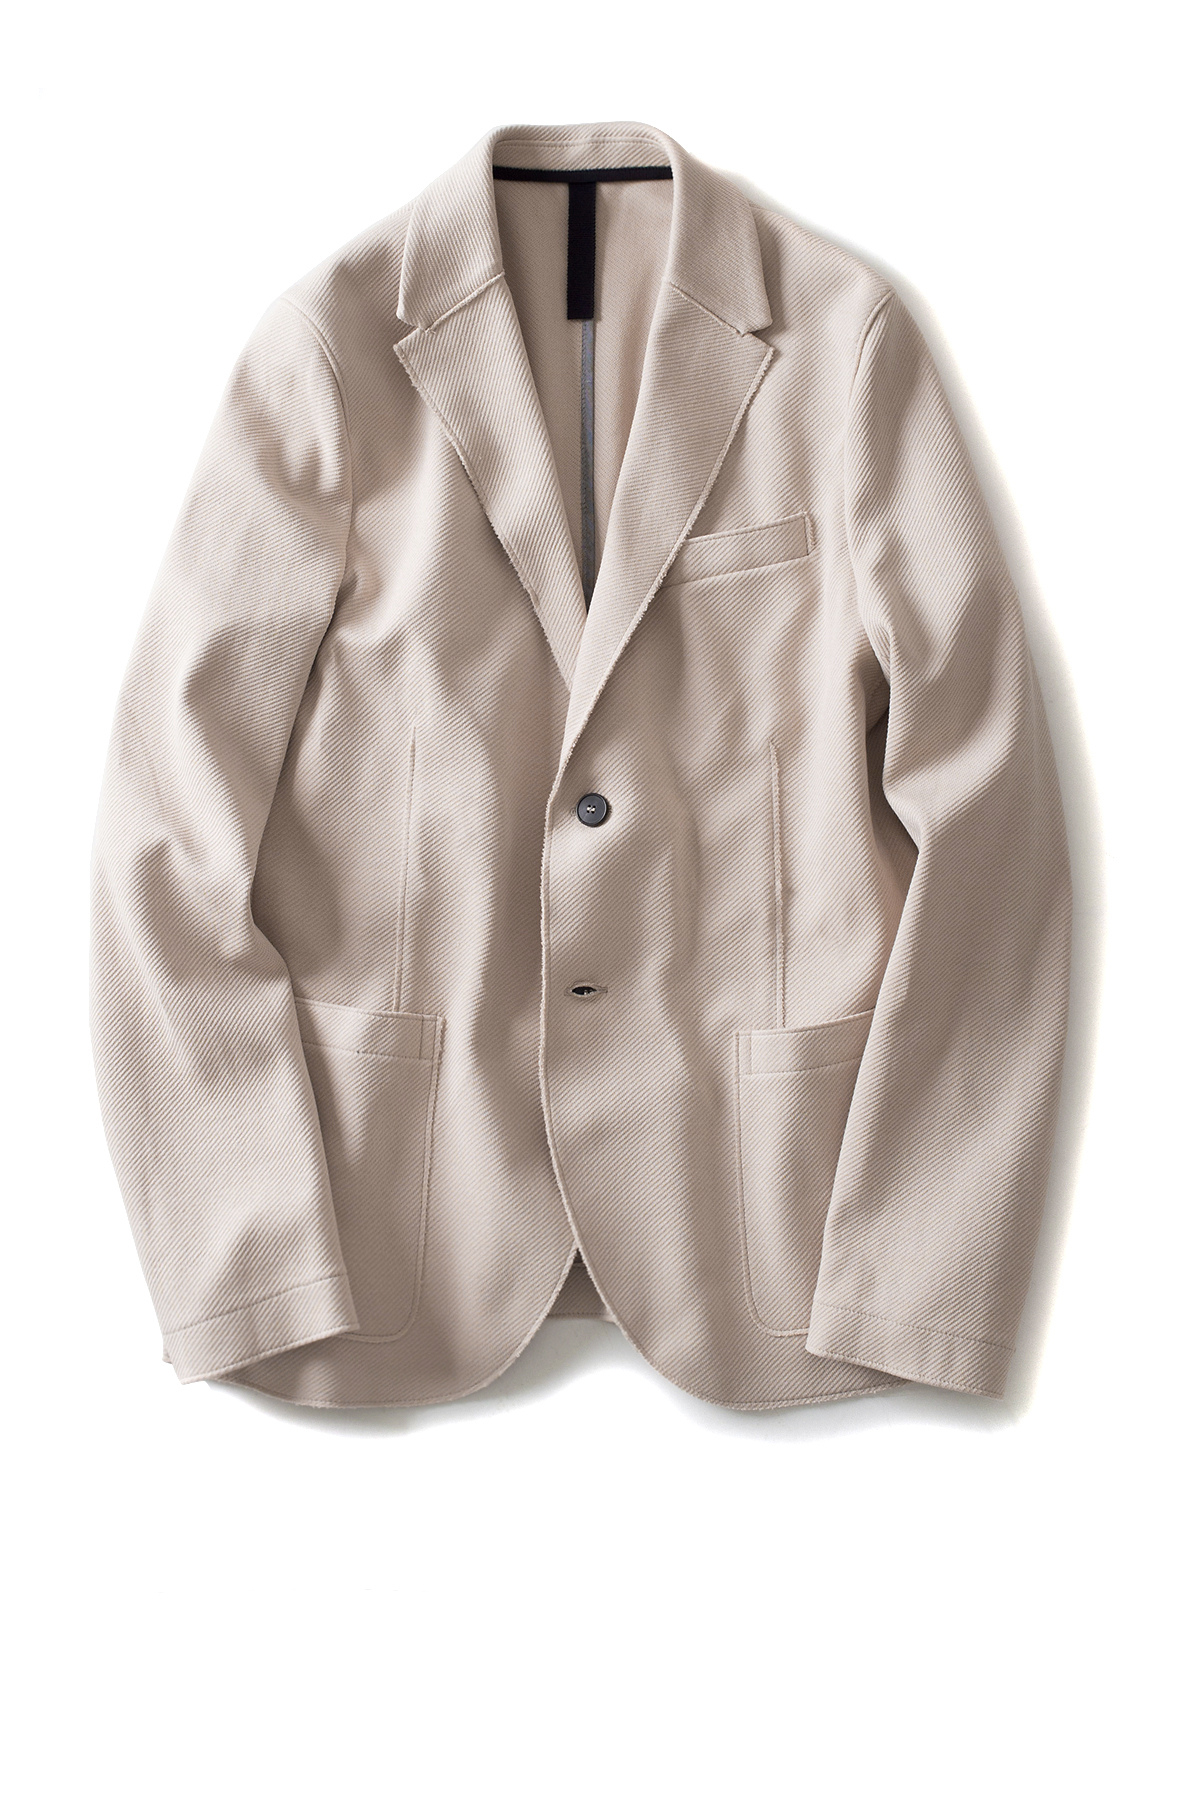 Harris Wharf London : Men 2b. Blazer Cavalry Twill (Cream)